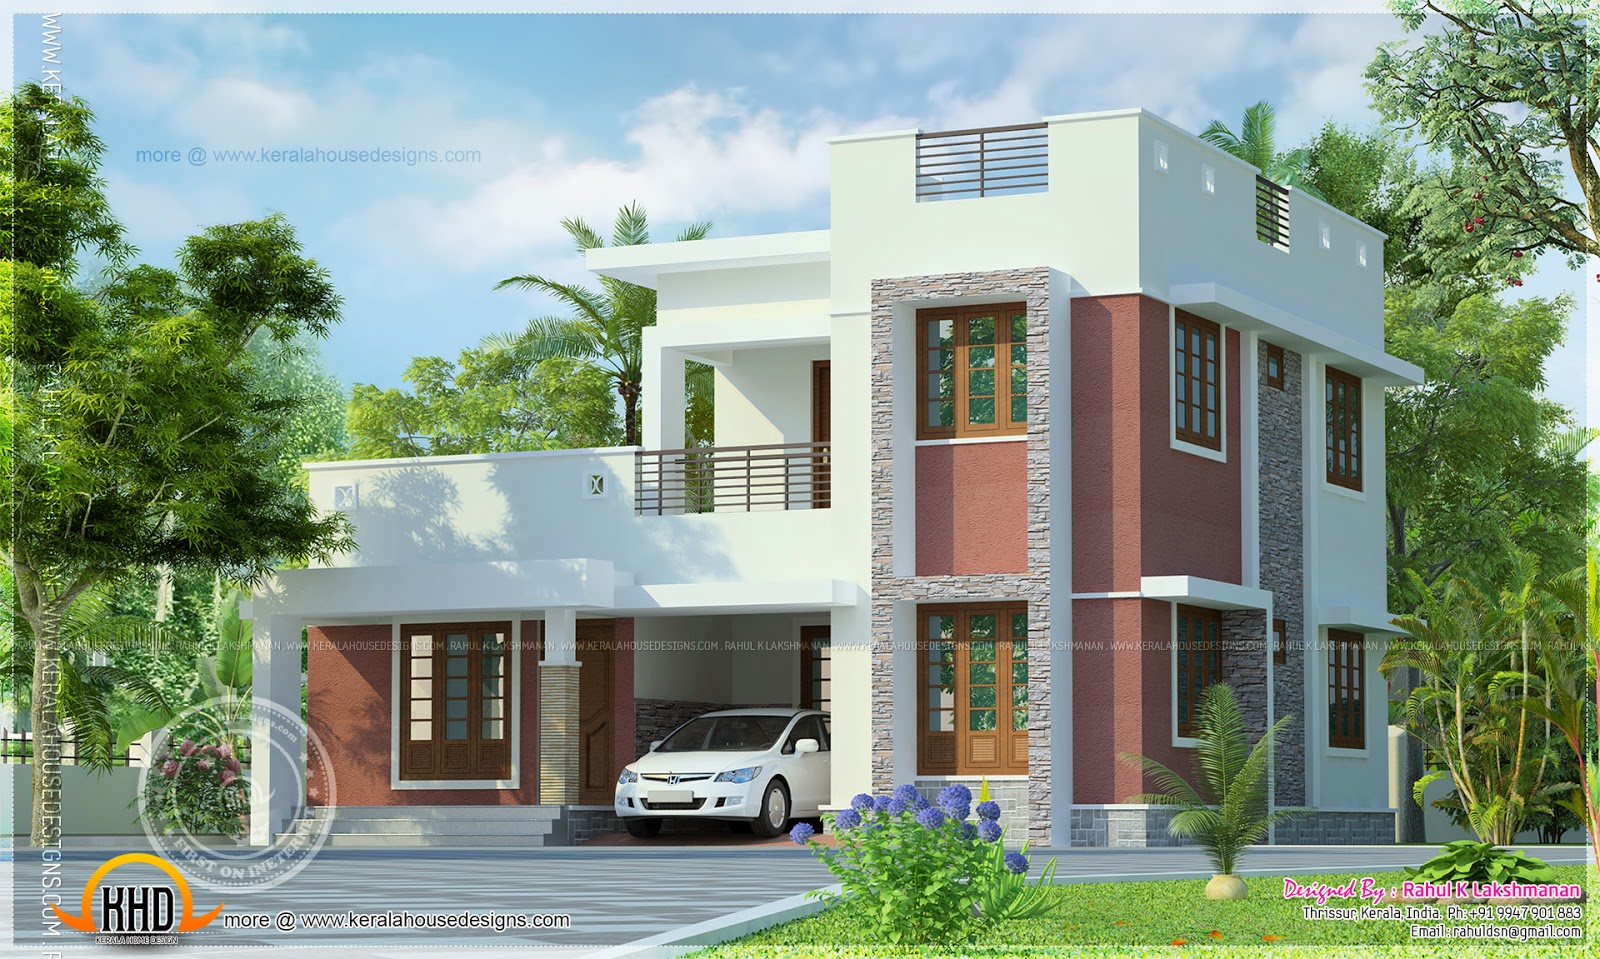 Simple flat roof house exterior kerala home design and for Simple house plans india